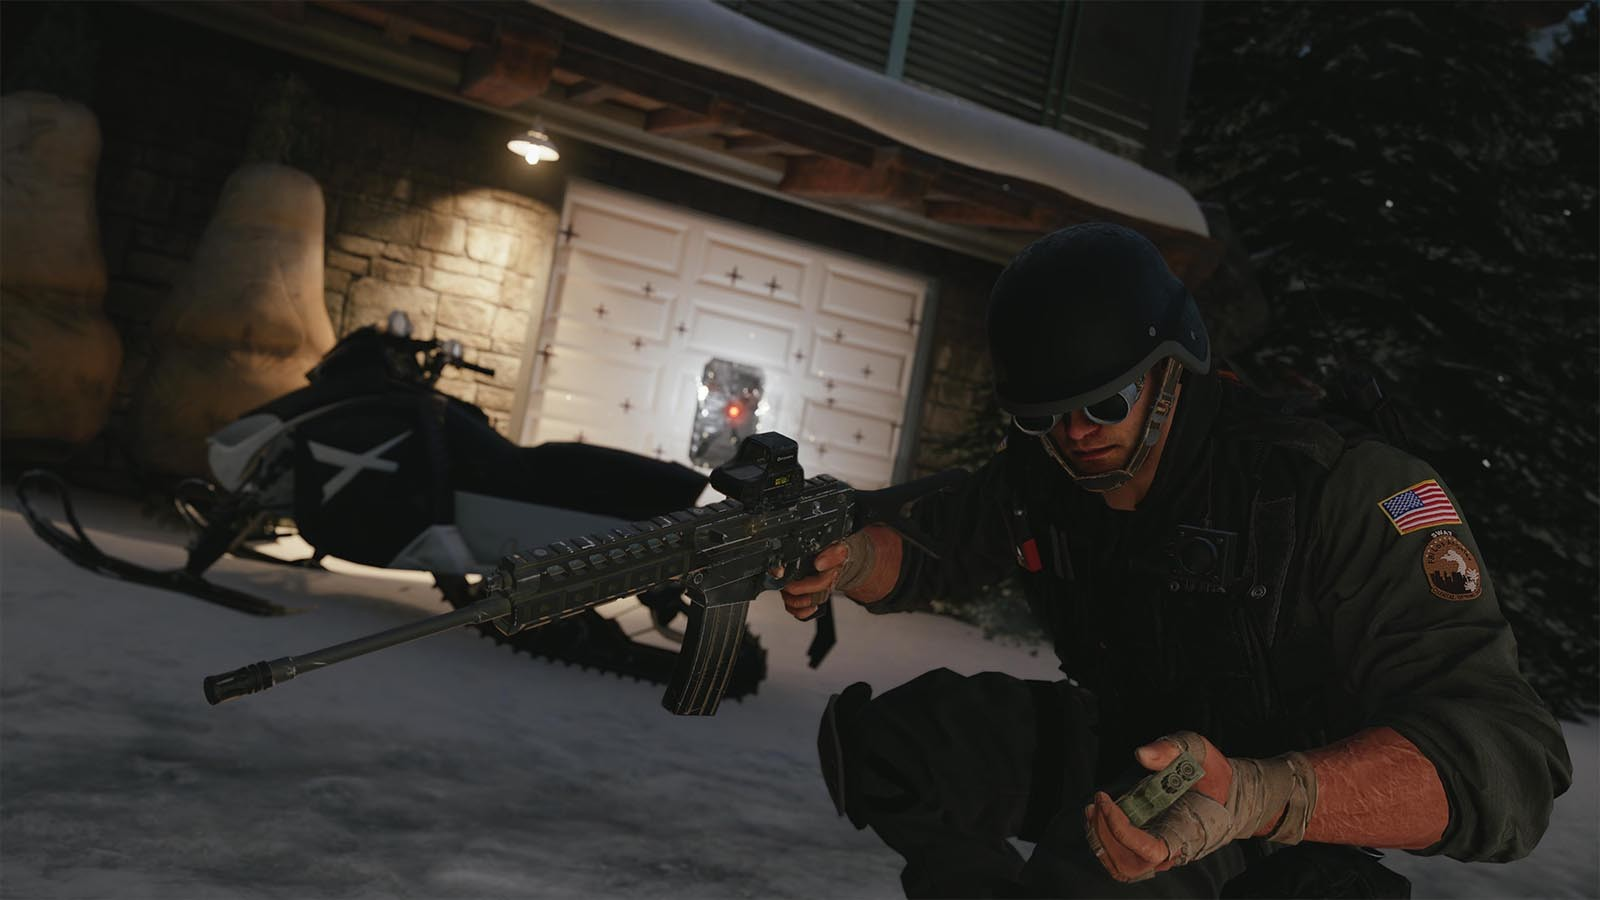 tom clancy s rainbow six Tom clancy's rainbow six siege who dares search 2,125 (1,230) tom clancy's rainbow six siege 42 from 159 votes 1 2 12 34 = 49 tom clancy's rainbow six siege trophies 5,092 tracked gamers have this game, 607 have completed it (1192%) trophy details hidden trophy 47 (30) continue playing to unlock this trophy (secret.